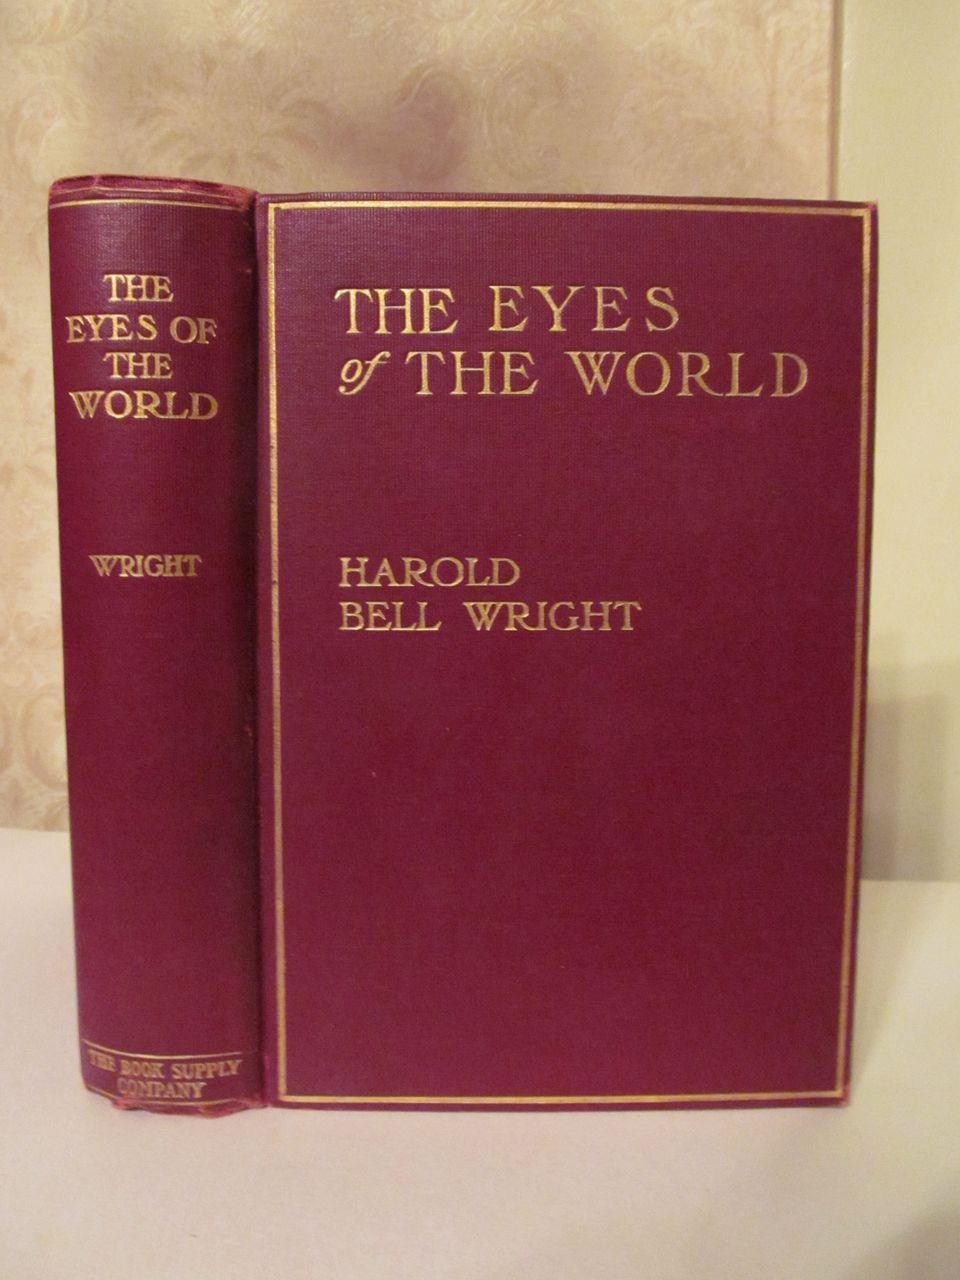 1914 The Eyes of the World by Harold Bell Wright, Illustrated, Publ The Book Supply Company